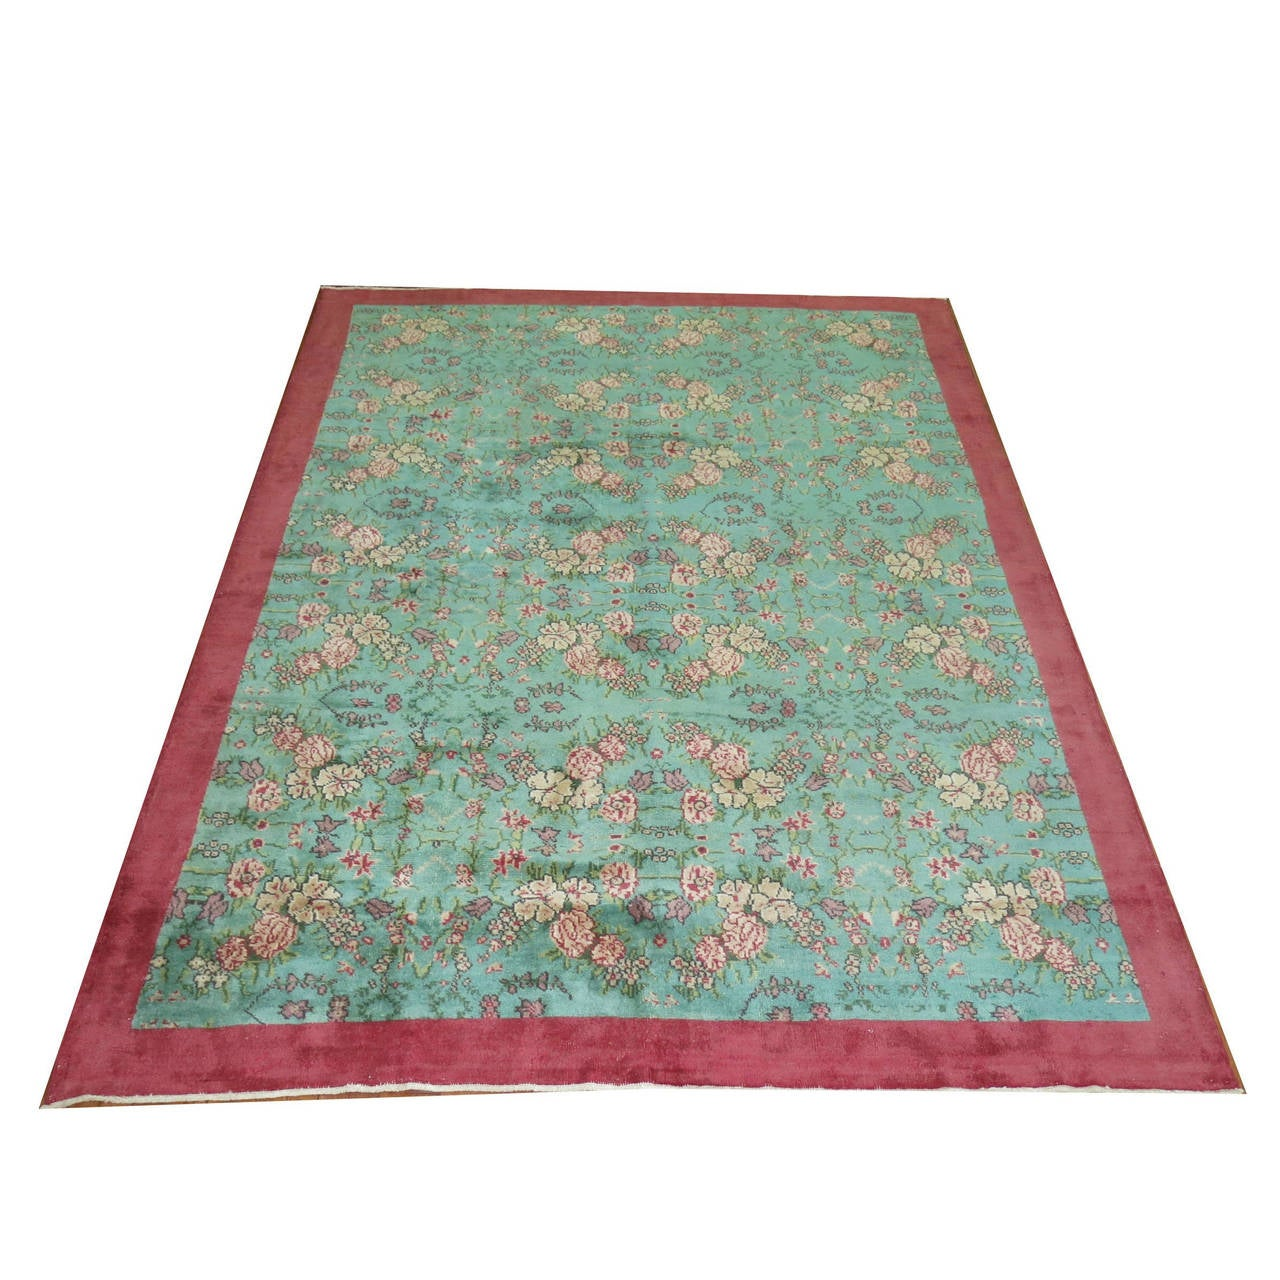 Colorful turkish deco rug for sale at 1stdibs for Colorful rugs for sale